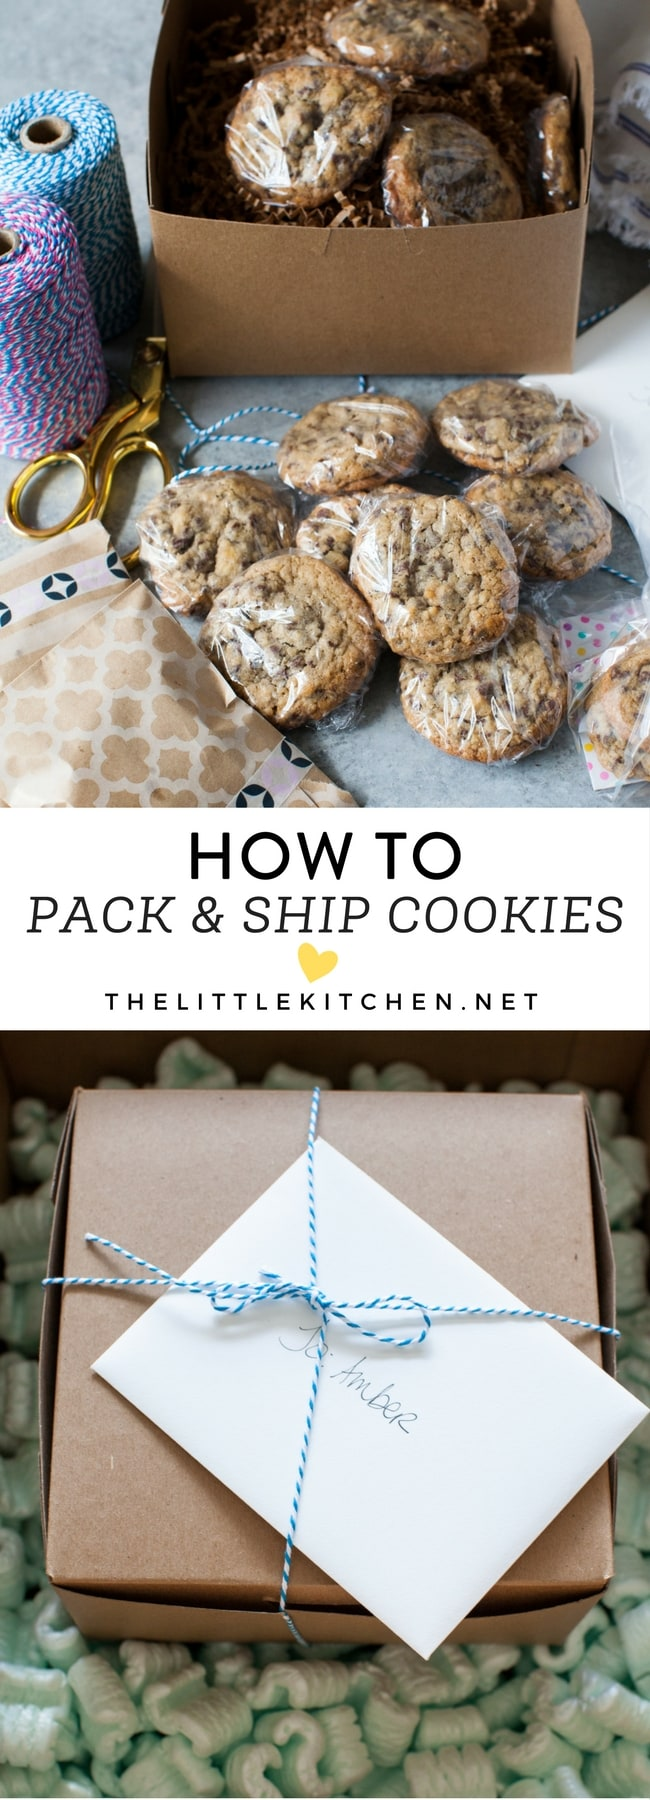 How to Pack & Ship Cookies from thelittlekitchen.net